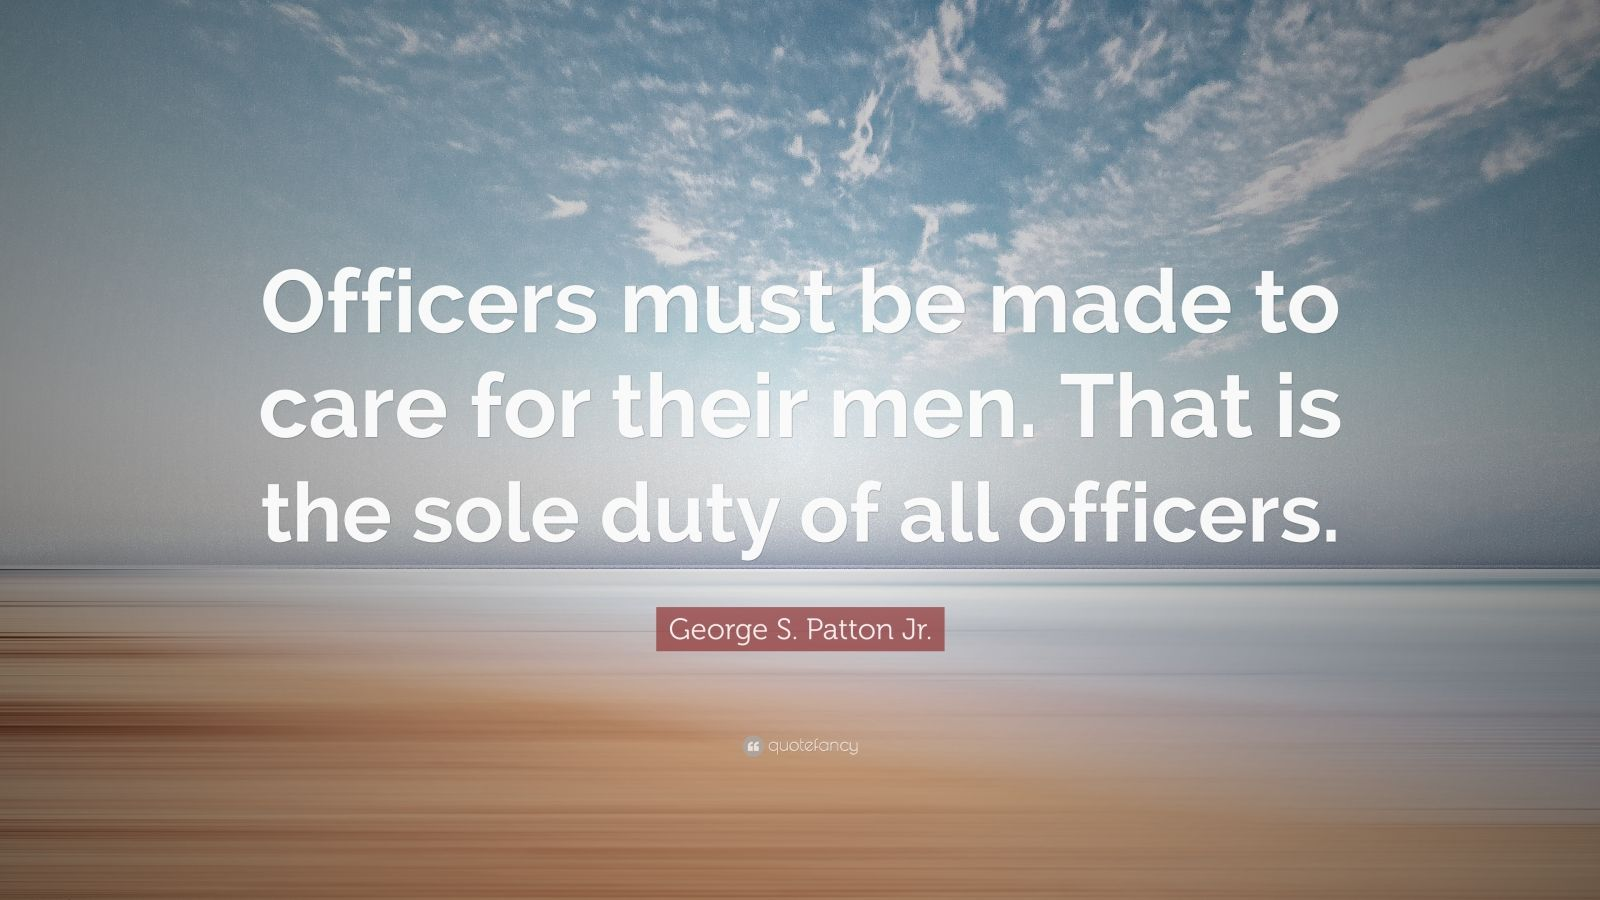 """George S. Patton Jr. Quote: """"Officers must be made to care for their men. That is the sole duty of all officers."""""""